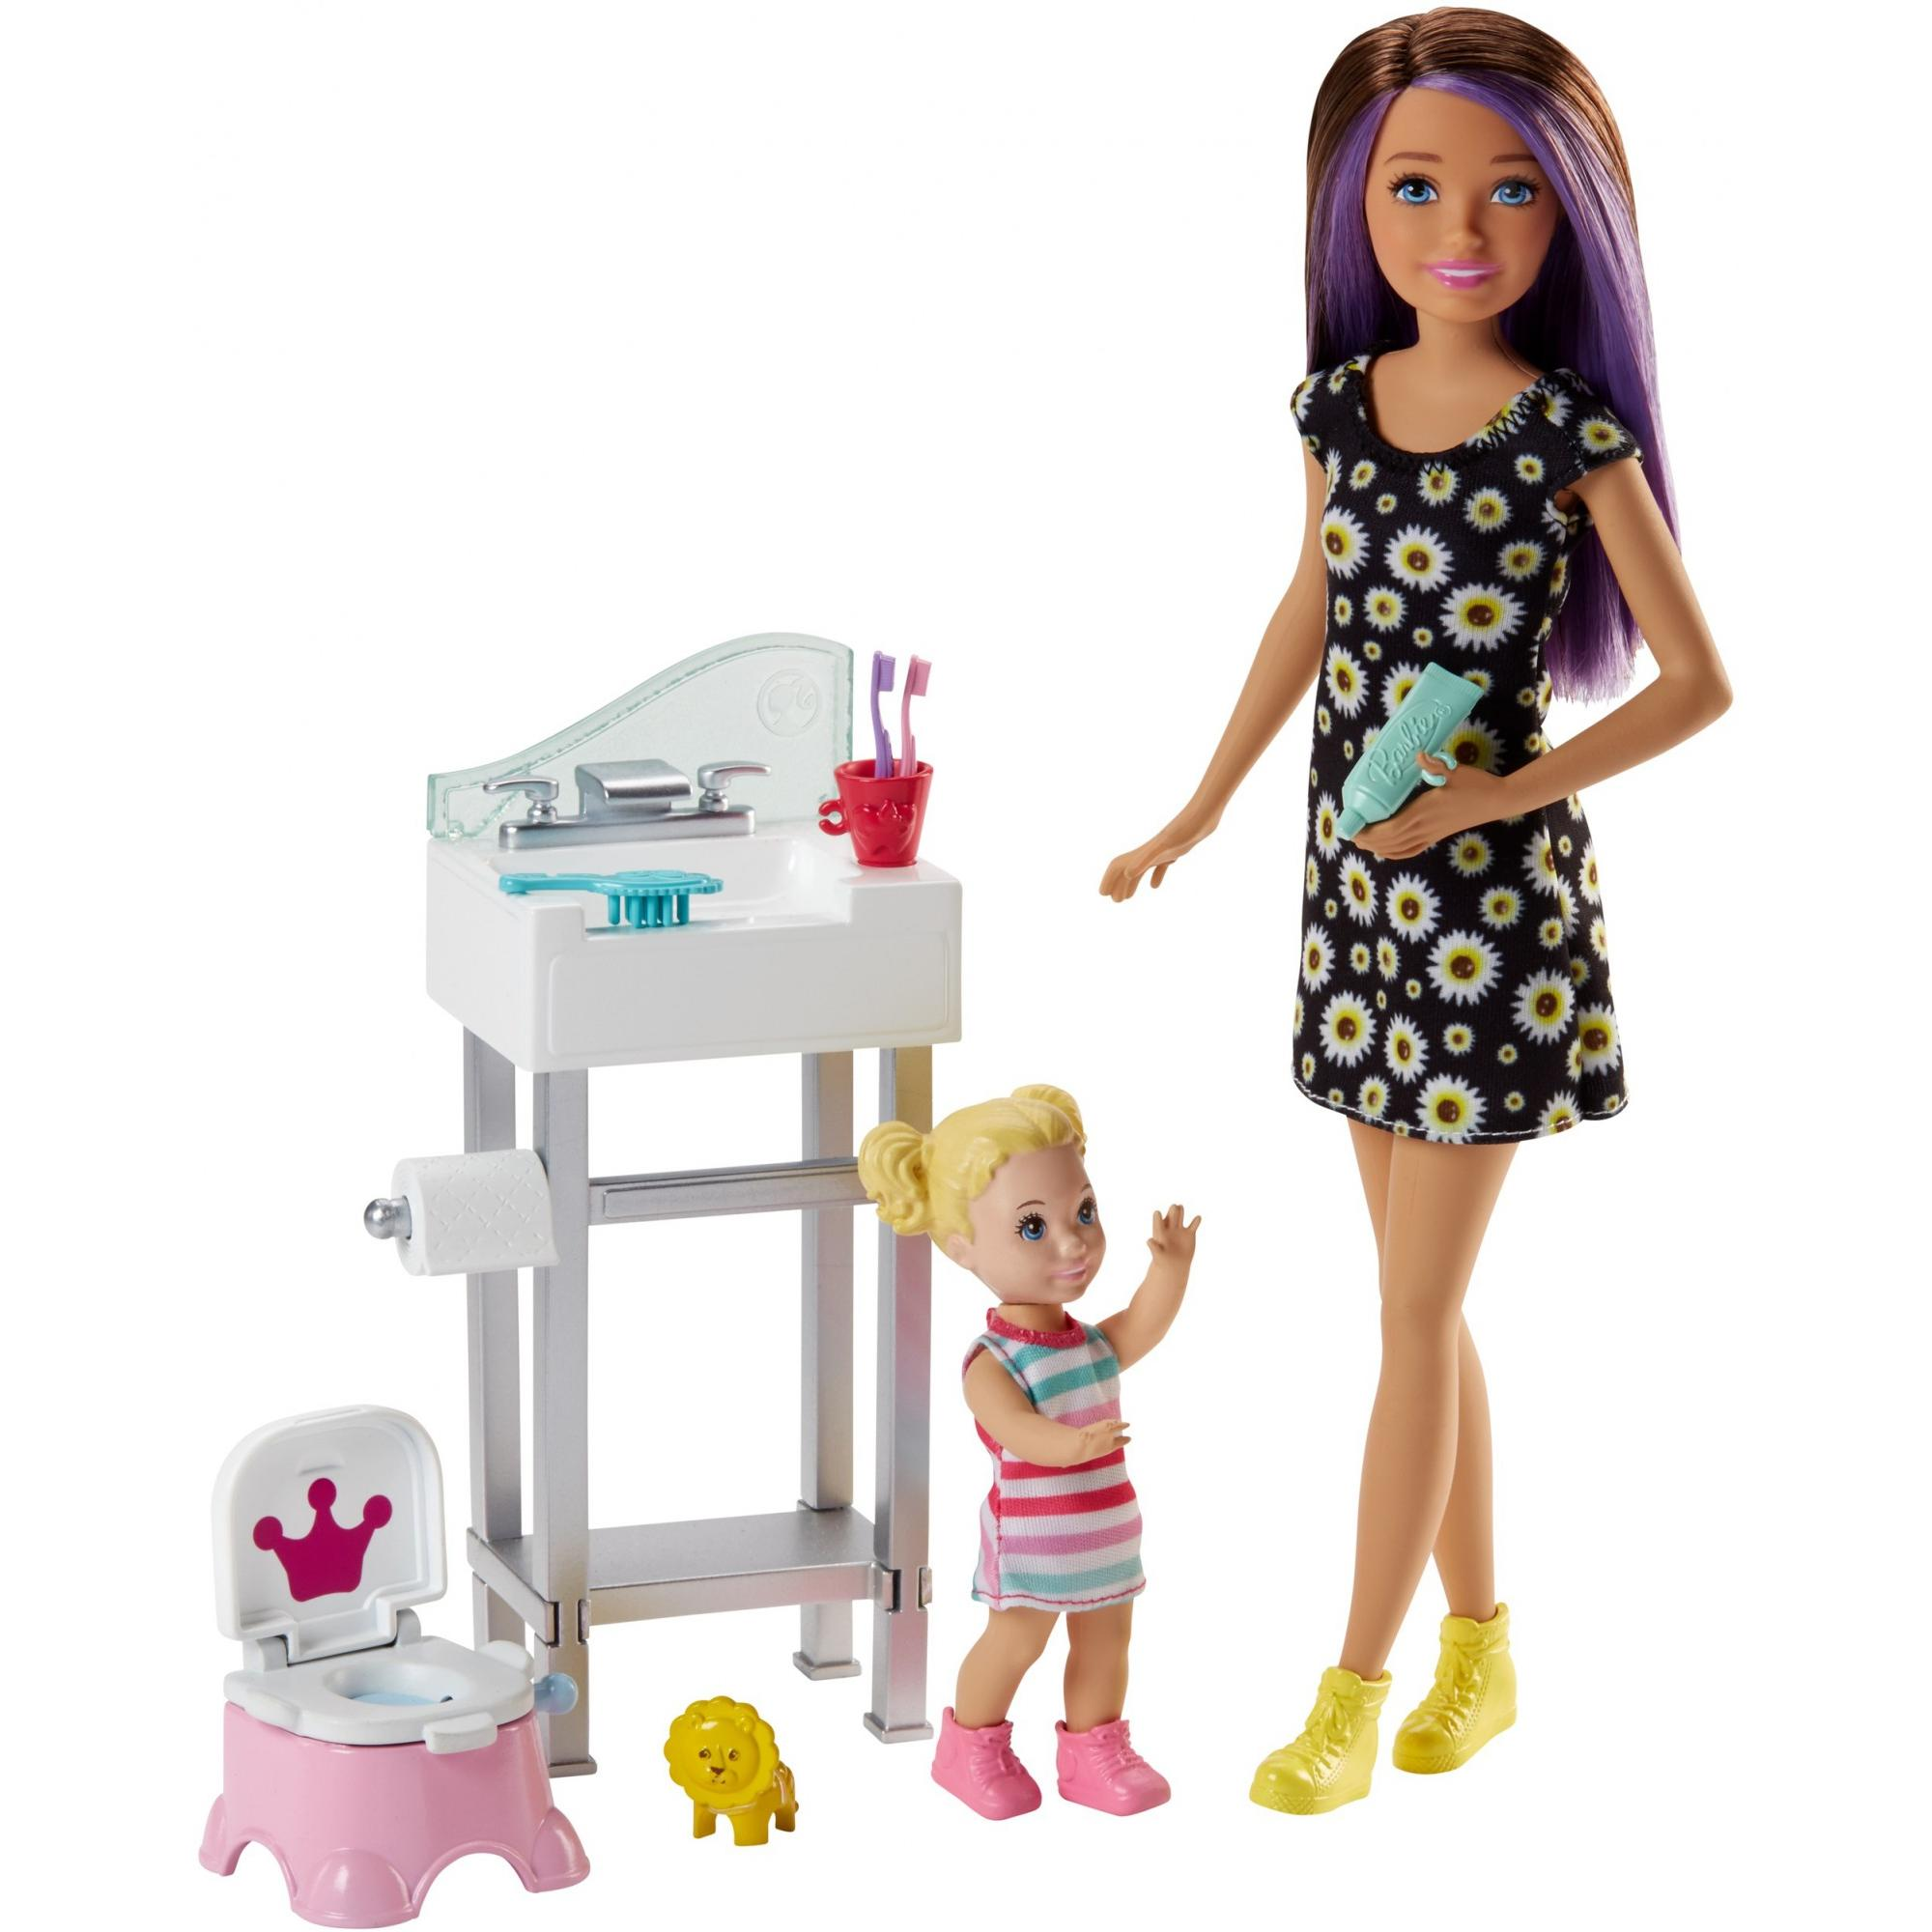 Barbie Skipper Babysitters Inc. Potty Training Playset and Doll by Mattel